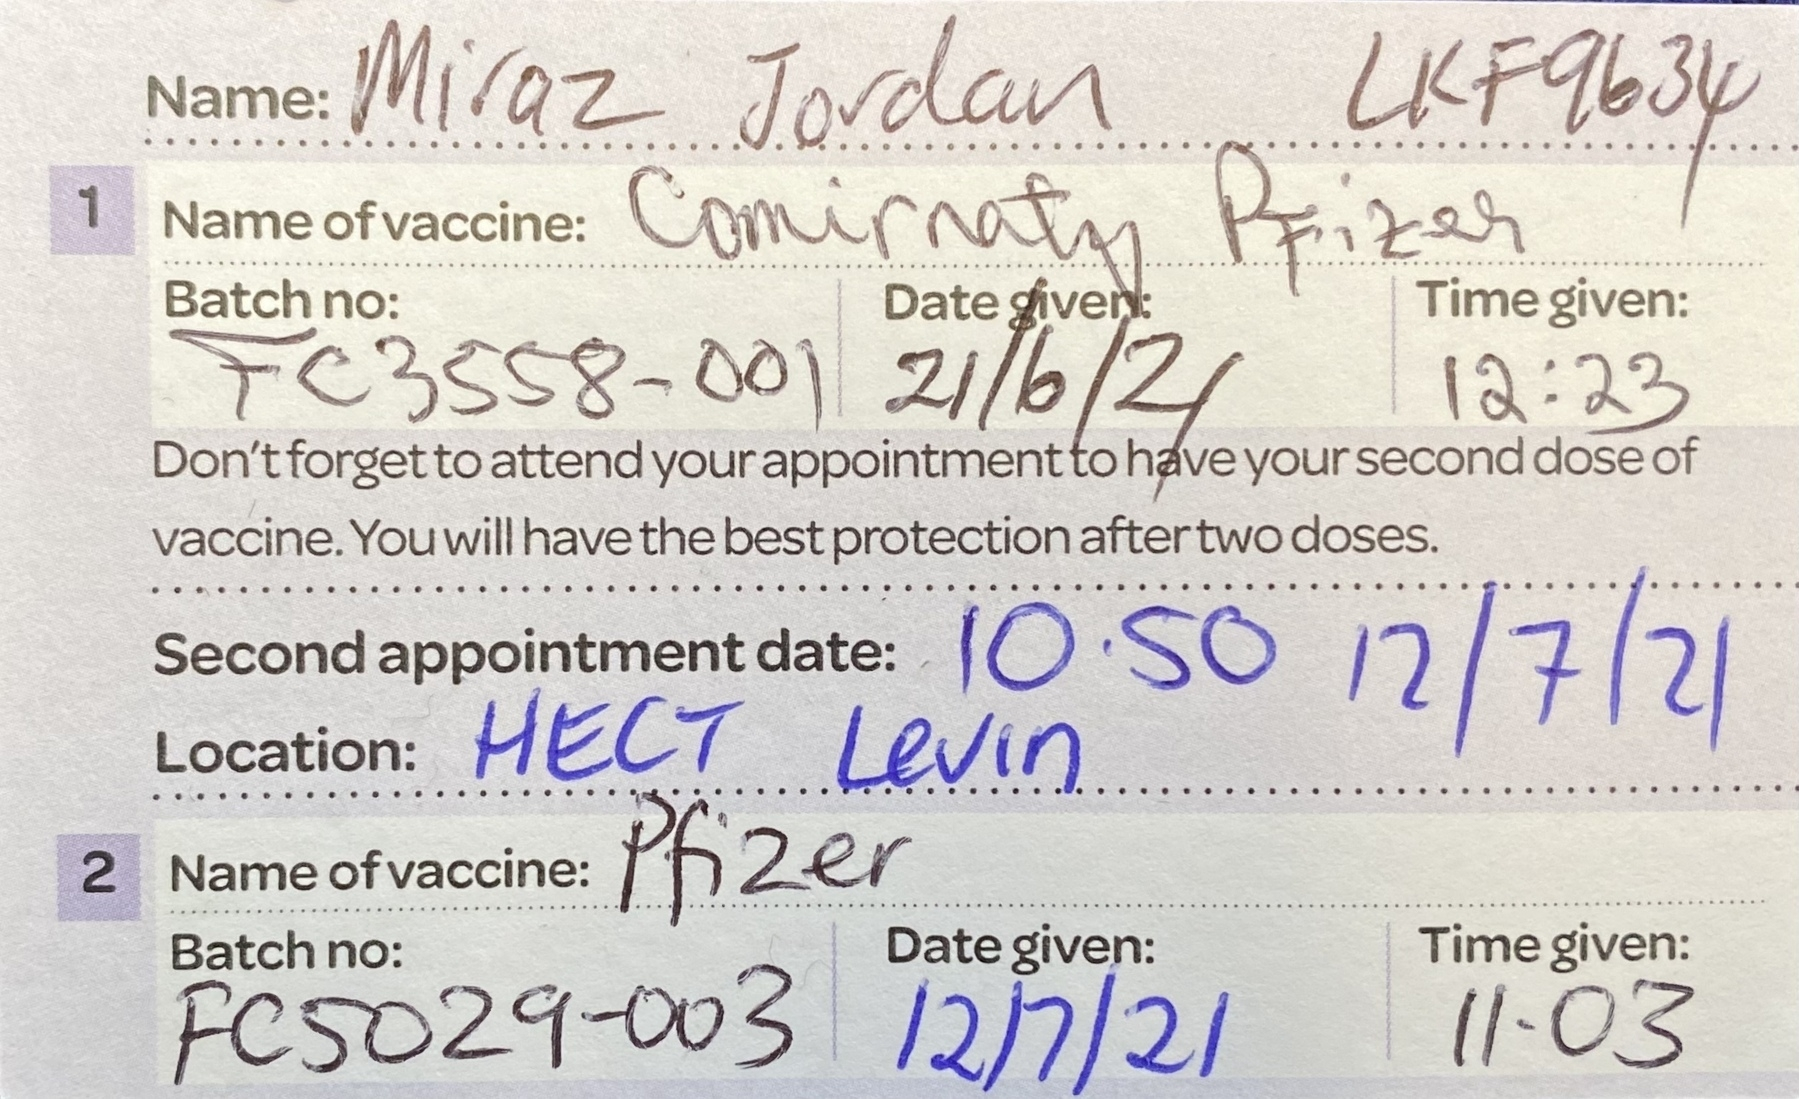 Vaccination card.